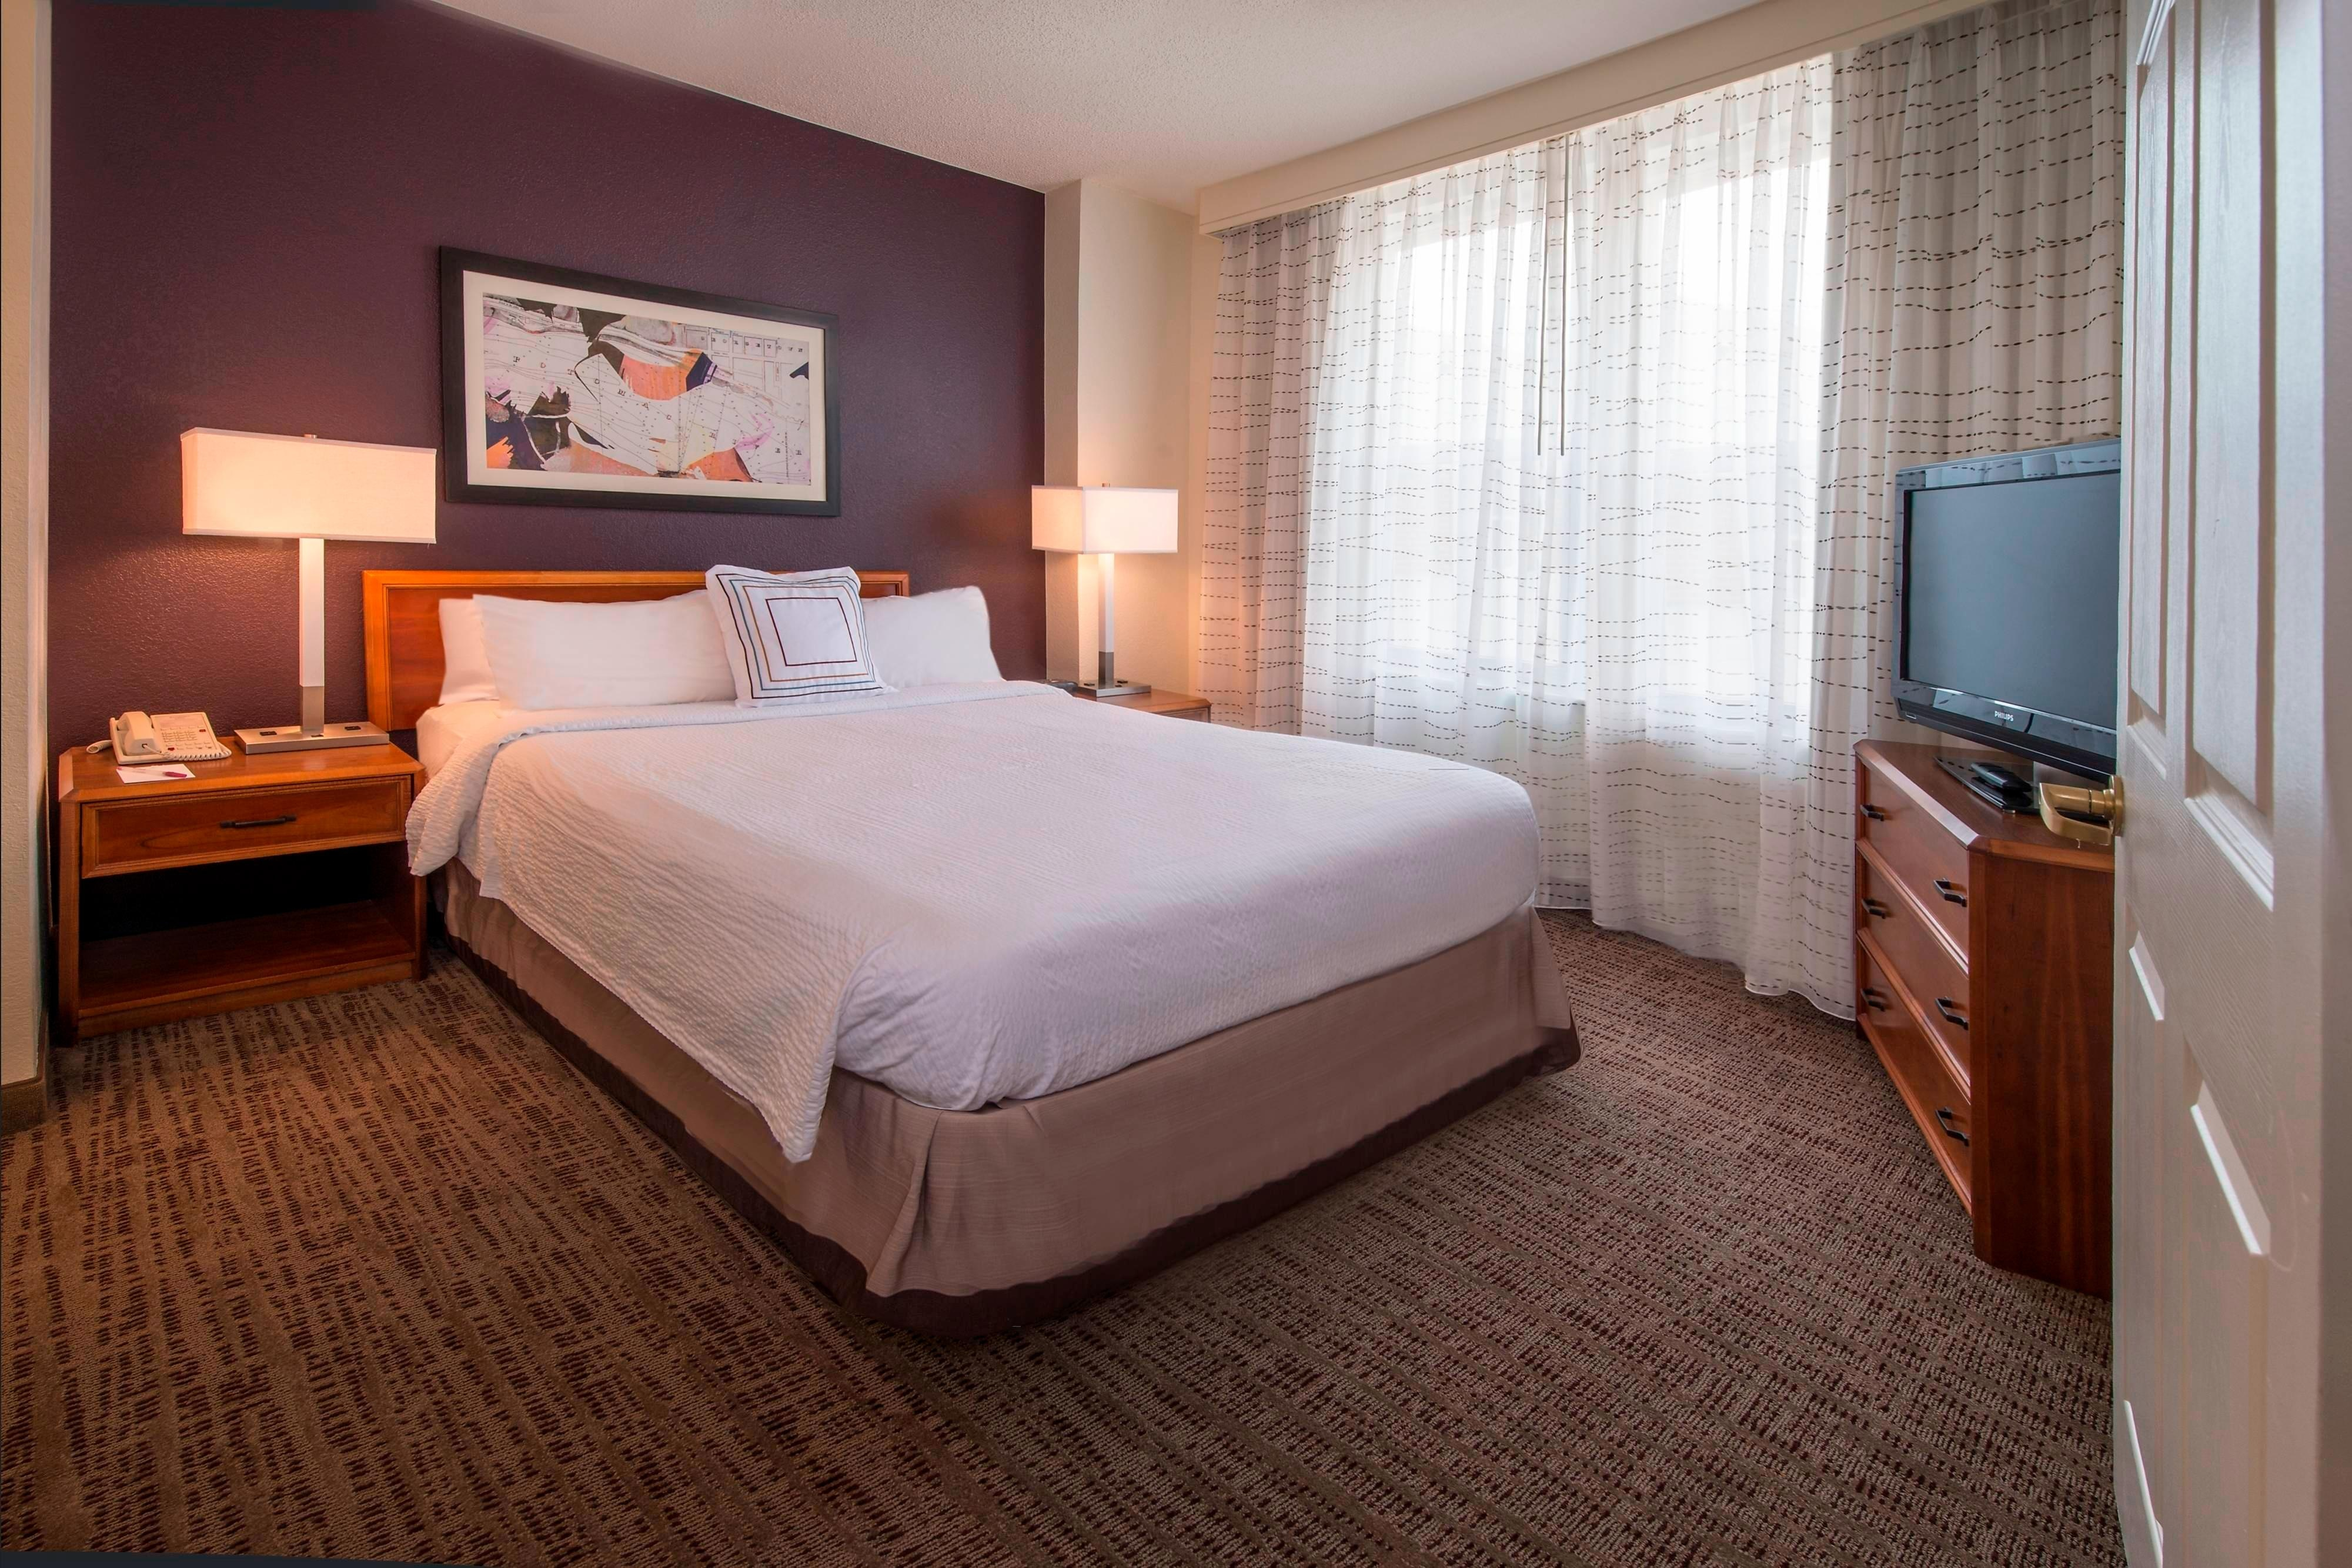 2 bedroom suites alexandria va residence inn alexandria - 2 bedroom hotels in virginia beach ...